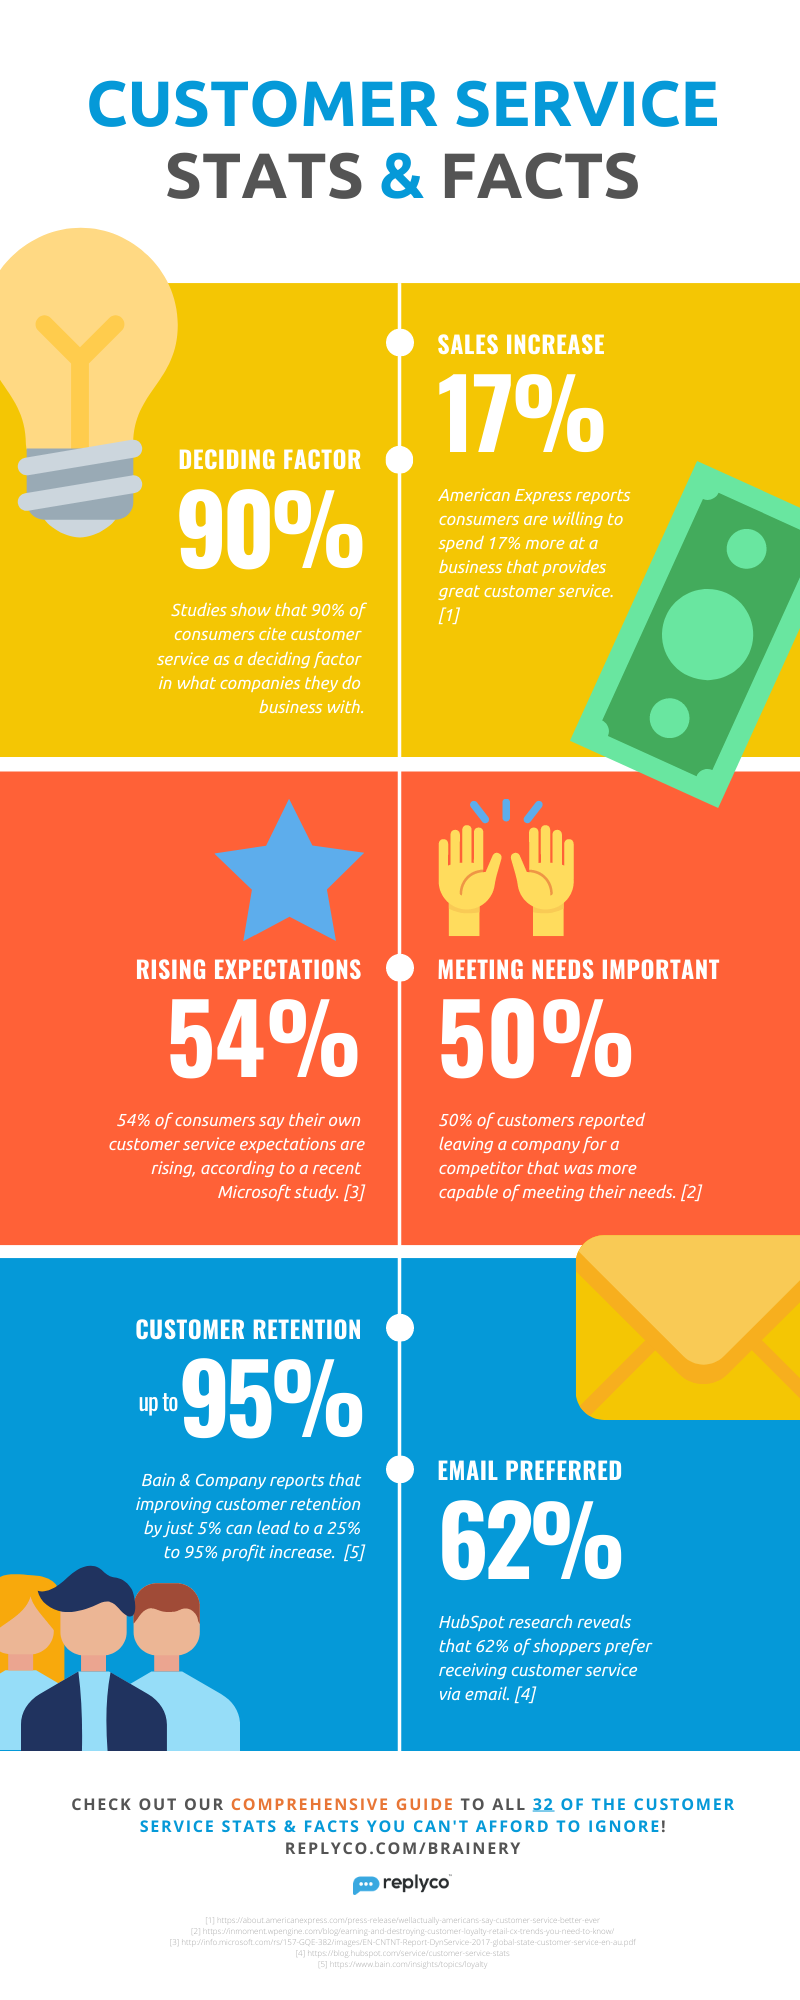 Customer Service Facts You Can't Ignore - Infographic from Replyco Helpdesk for eCommerce